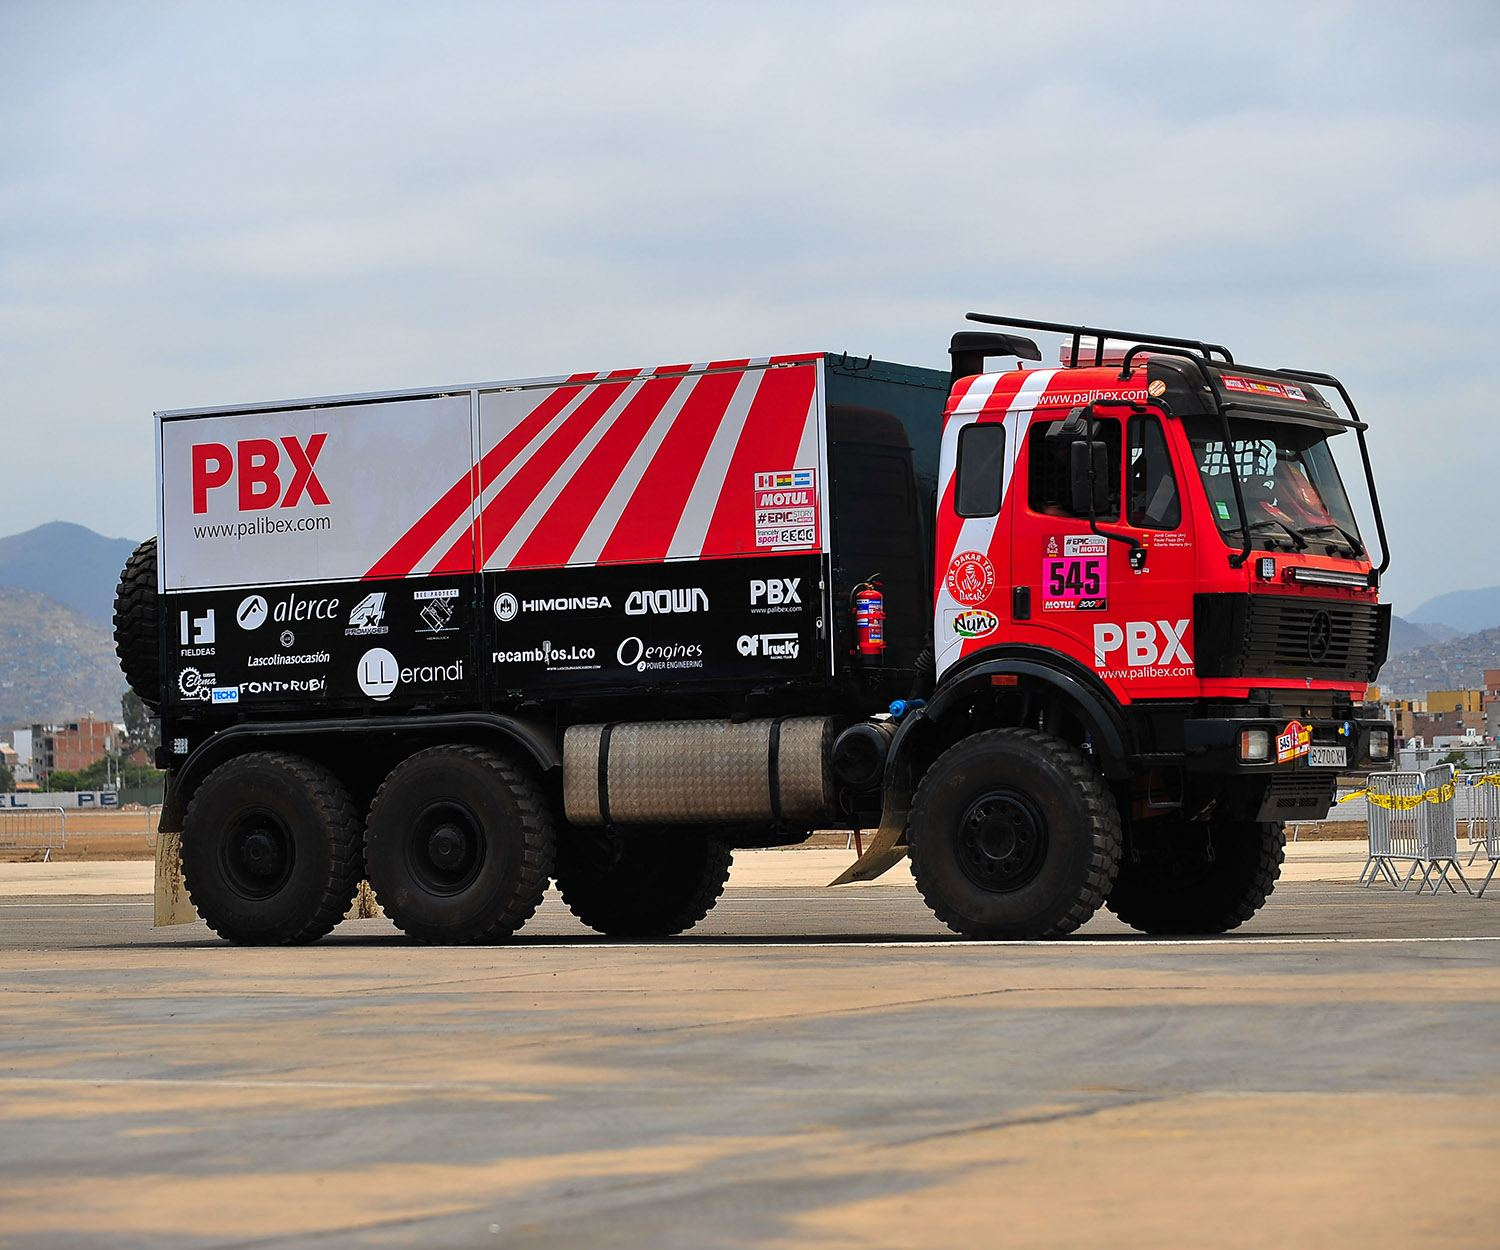 545-2018-01-06-PBX DAKAR 2018 TEAM (1)